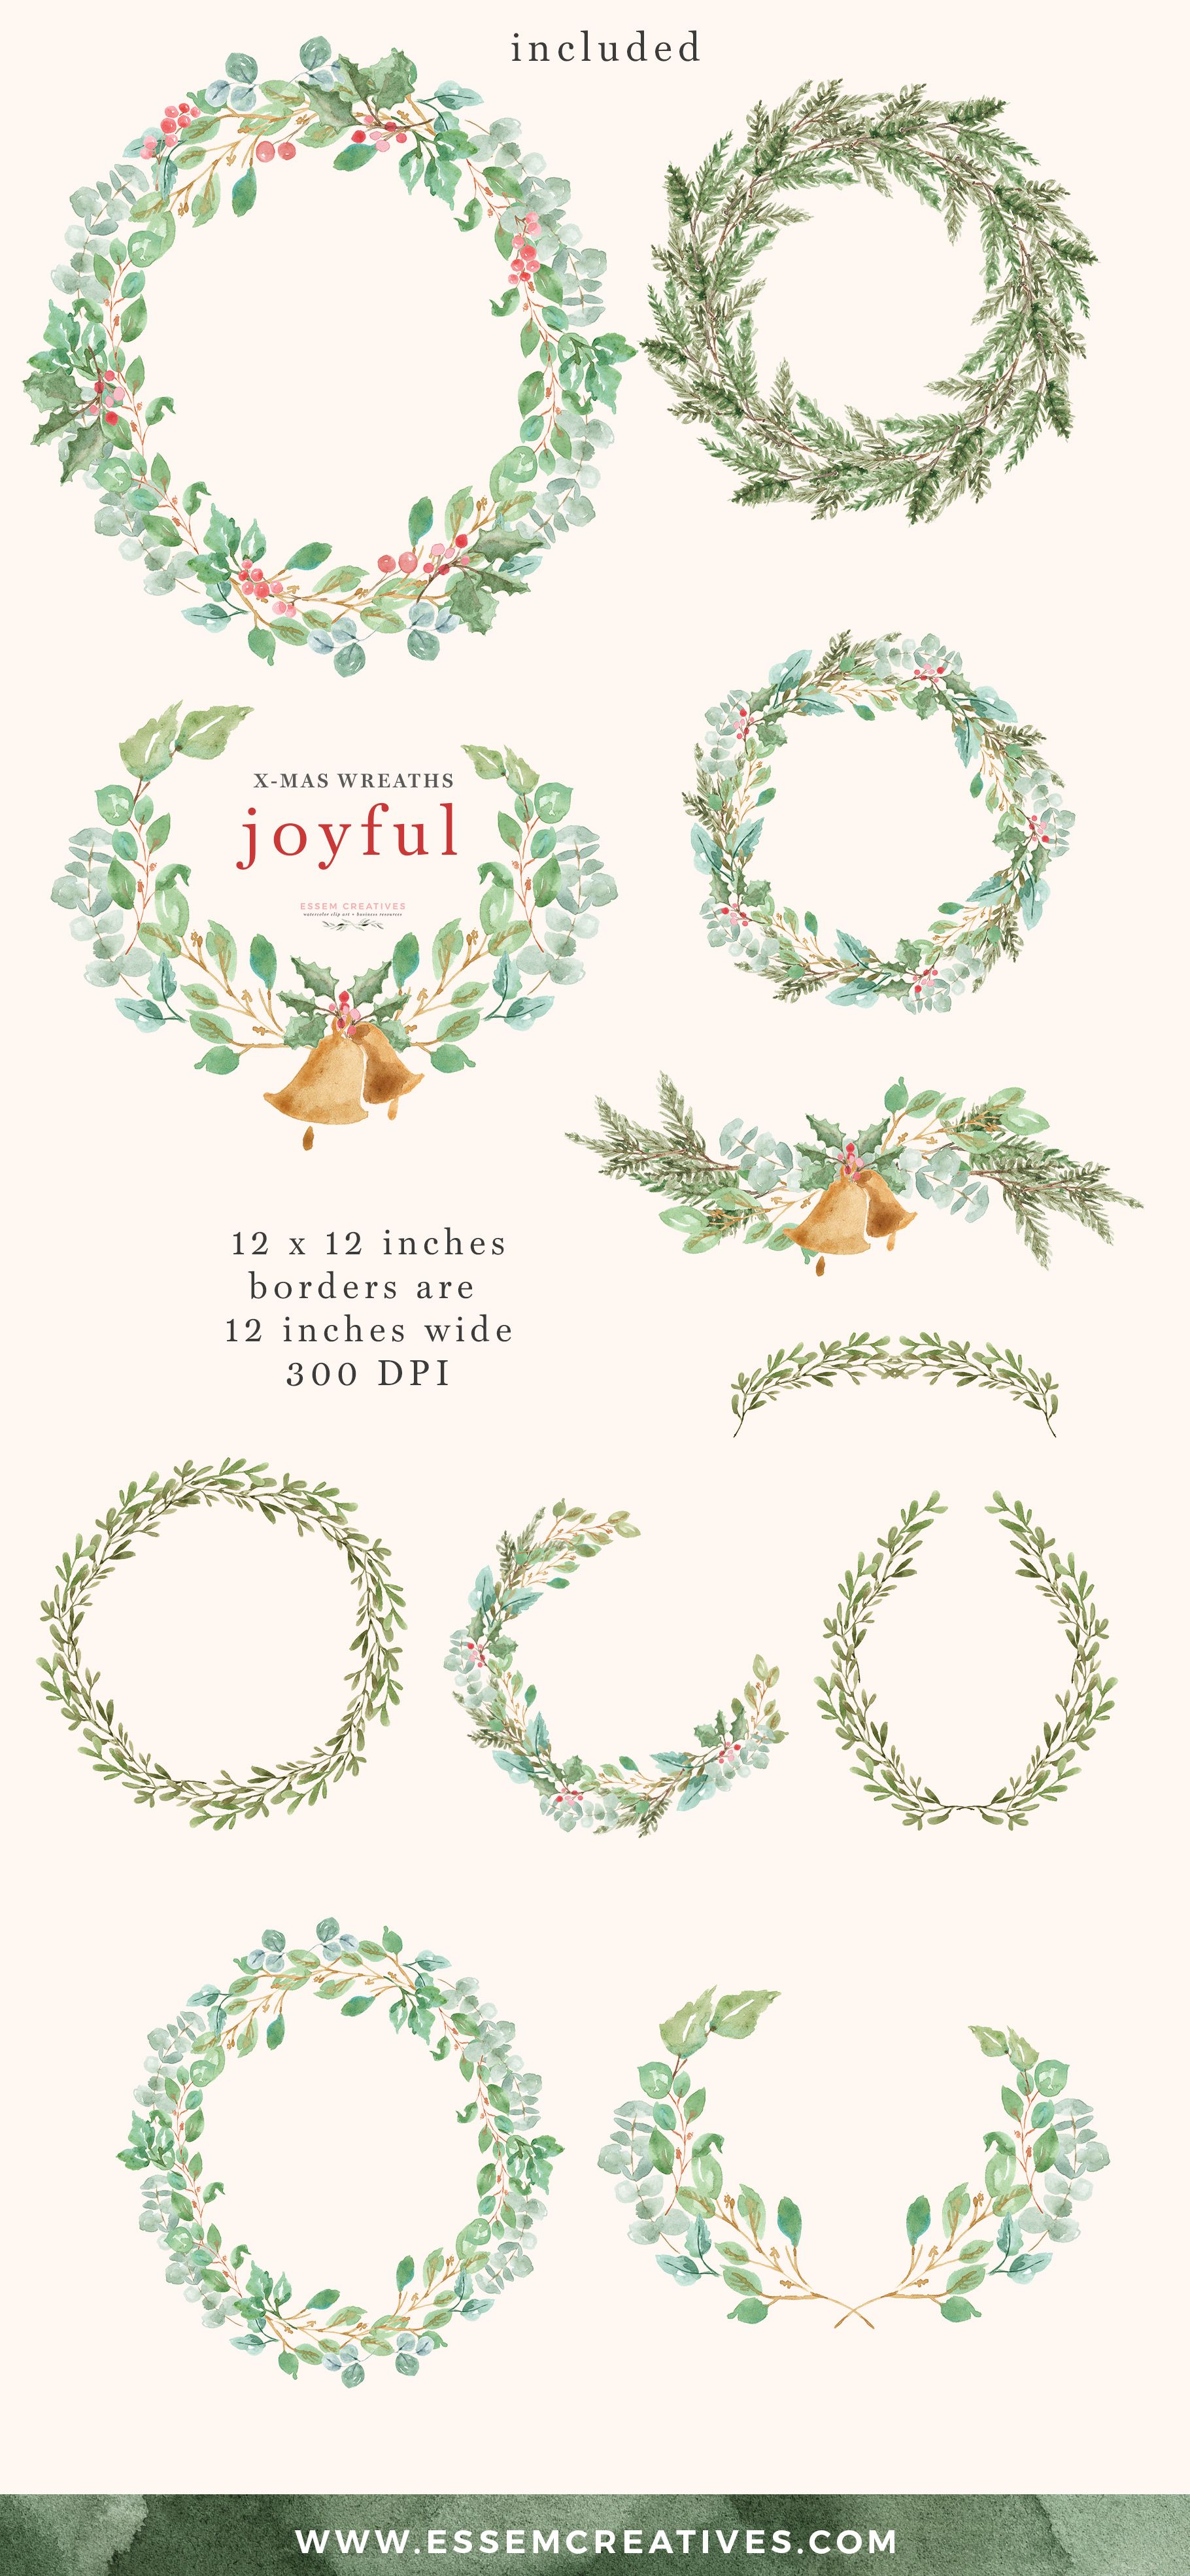 Watercolor Christmas Wreath Clipart for Holiday Cards